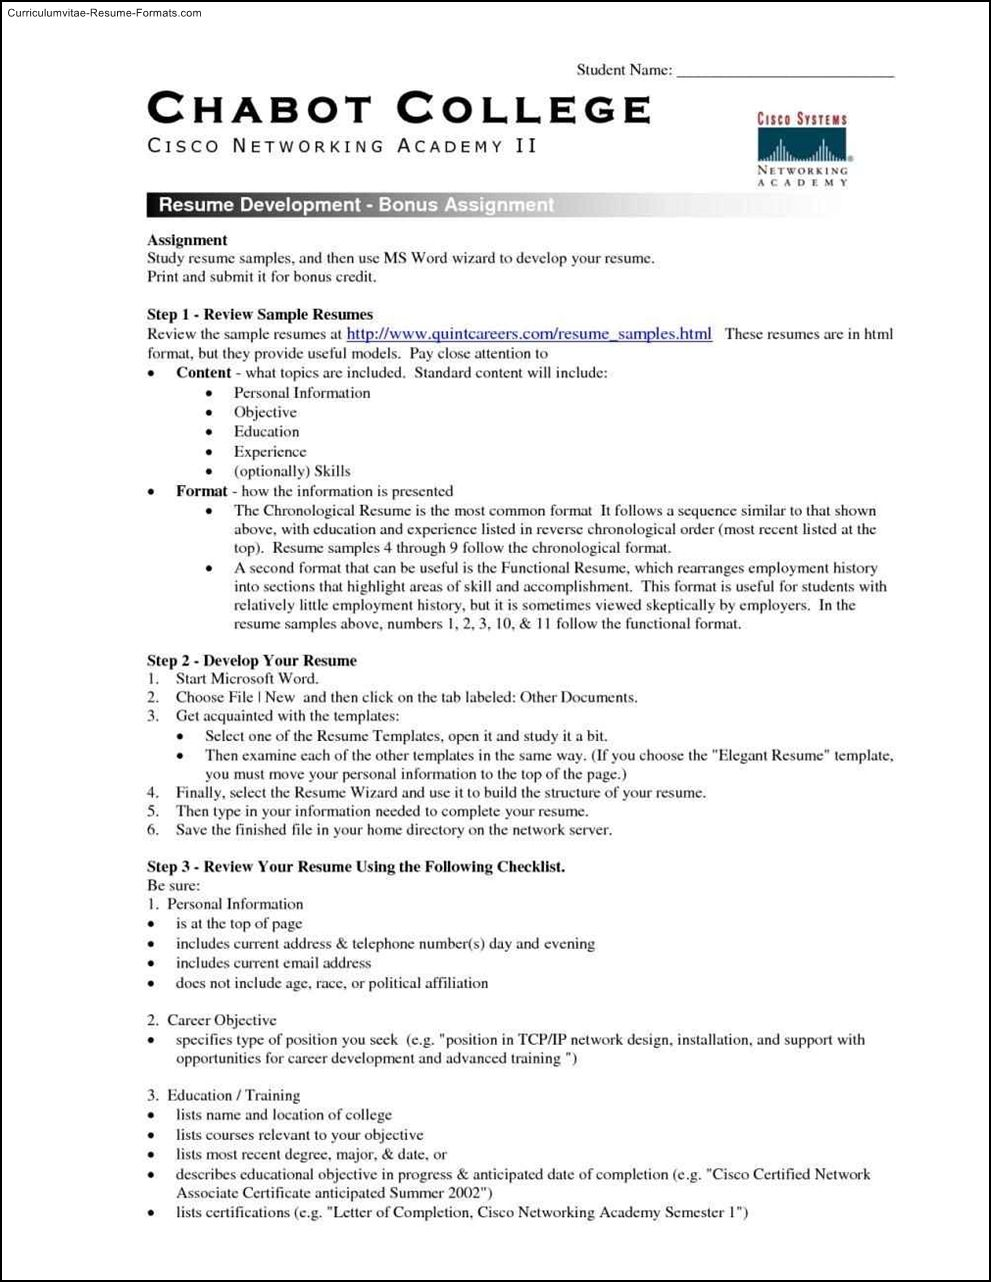 College Resume Free Resume Templates For Students Inspiration Decoration College